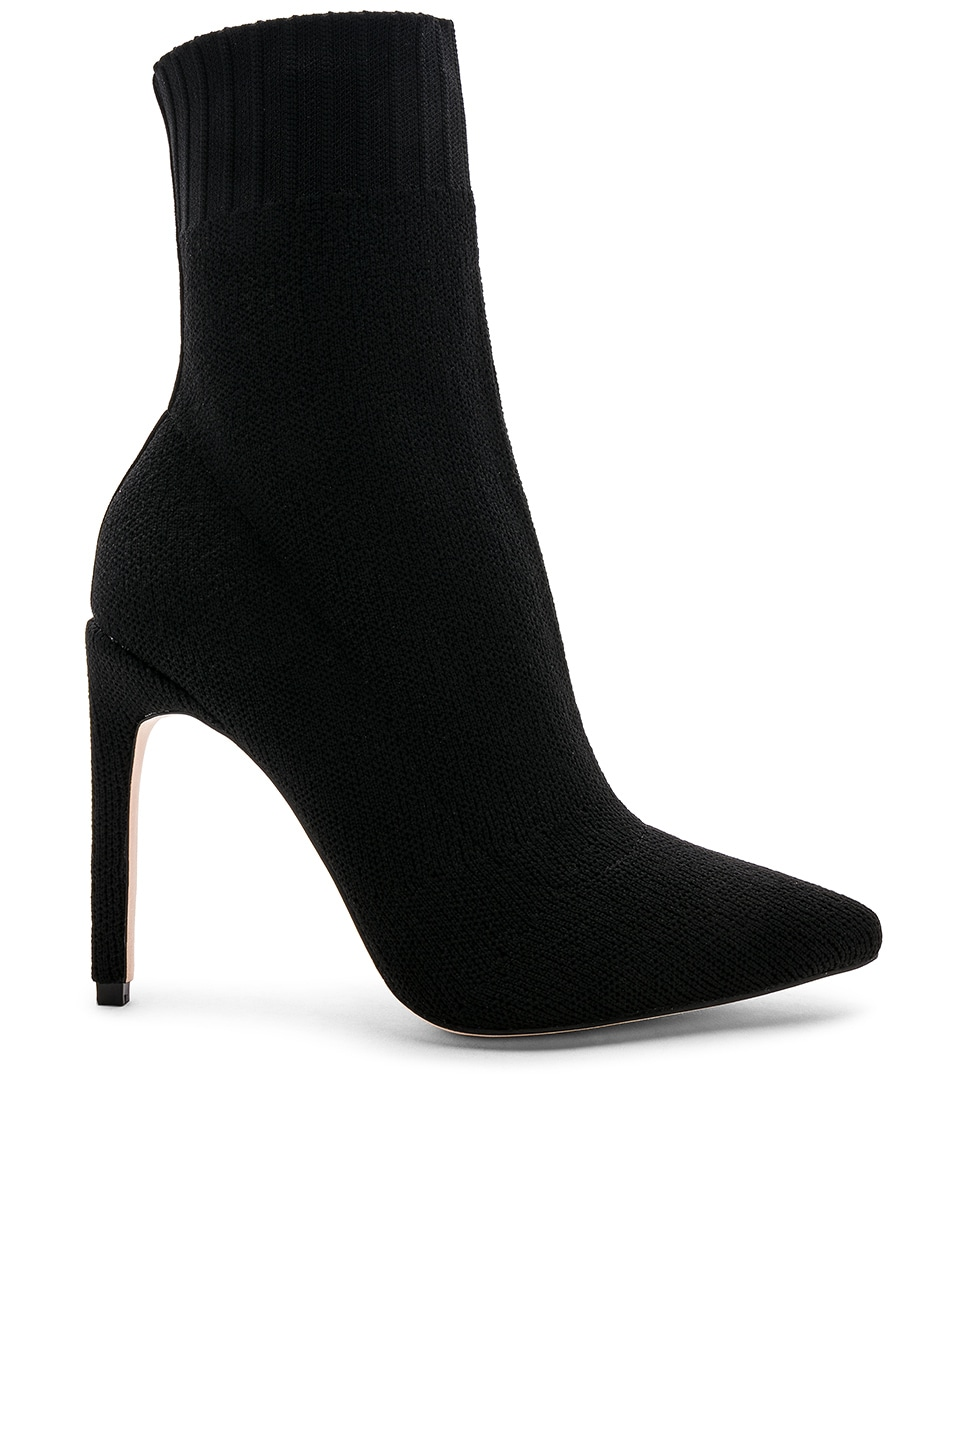 RAYE Delta Bootie in Black